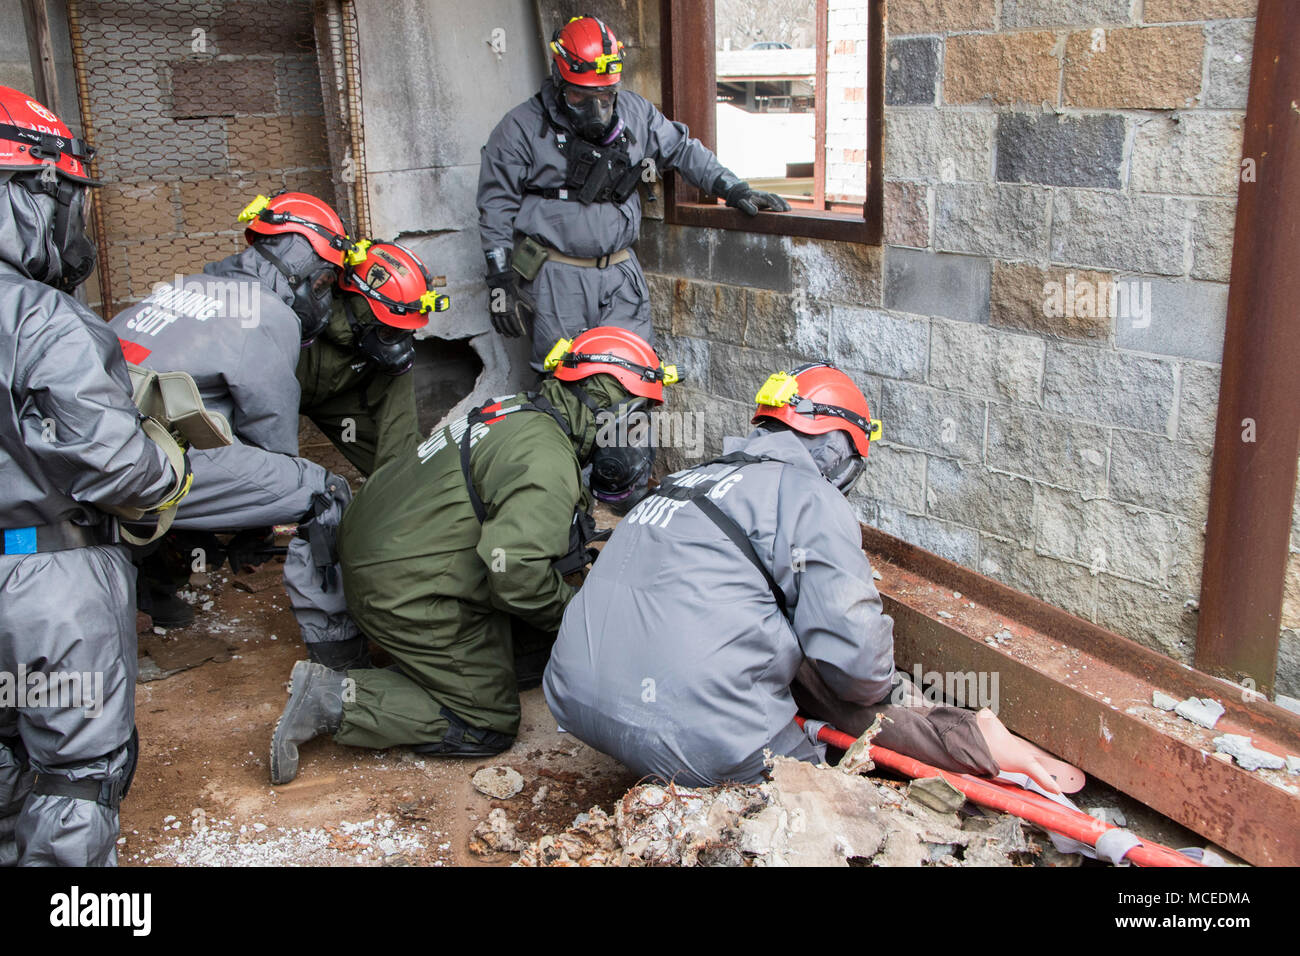 Soldiers from the 267th Engineer Detachment (Fire Fighters), South Carolina Army National Guard, work together to free a simulated casualty that was trapped under a steel beam in a simulated collapsed building during a urban search and rescue drill as a part of Exercise Guardian Response, April 13, 2018, at Muscatatuck Urban Training Center, Butlerville, Indiana. The 267th, based in Eastover, South Carolina, worked with Army National Guard search and resuce teams from Alabama, Florida and Maryland to locate and evacuate simulated casualties in the building during the exercise. (U.S. Army photo - Stock Image